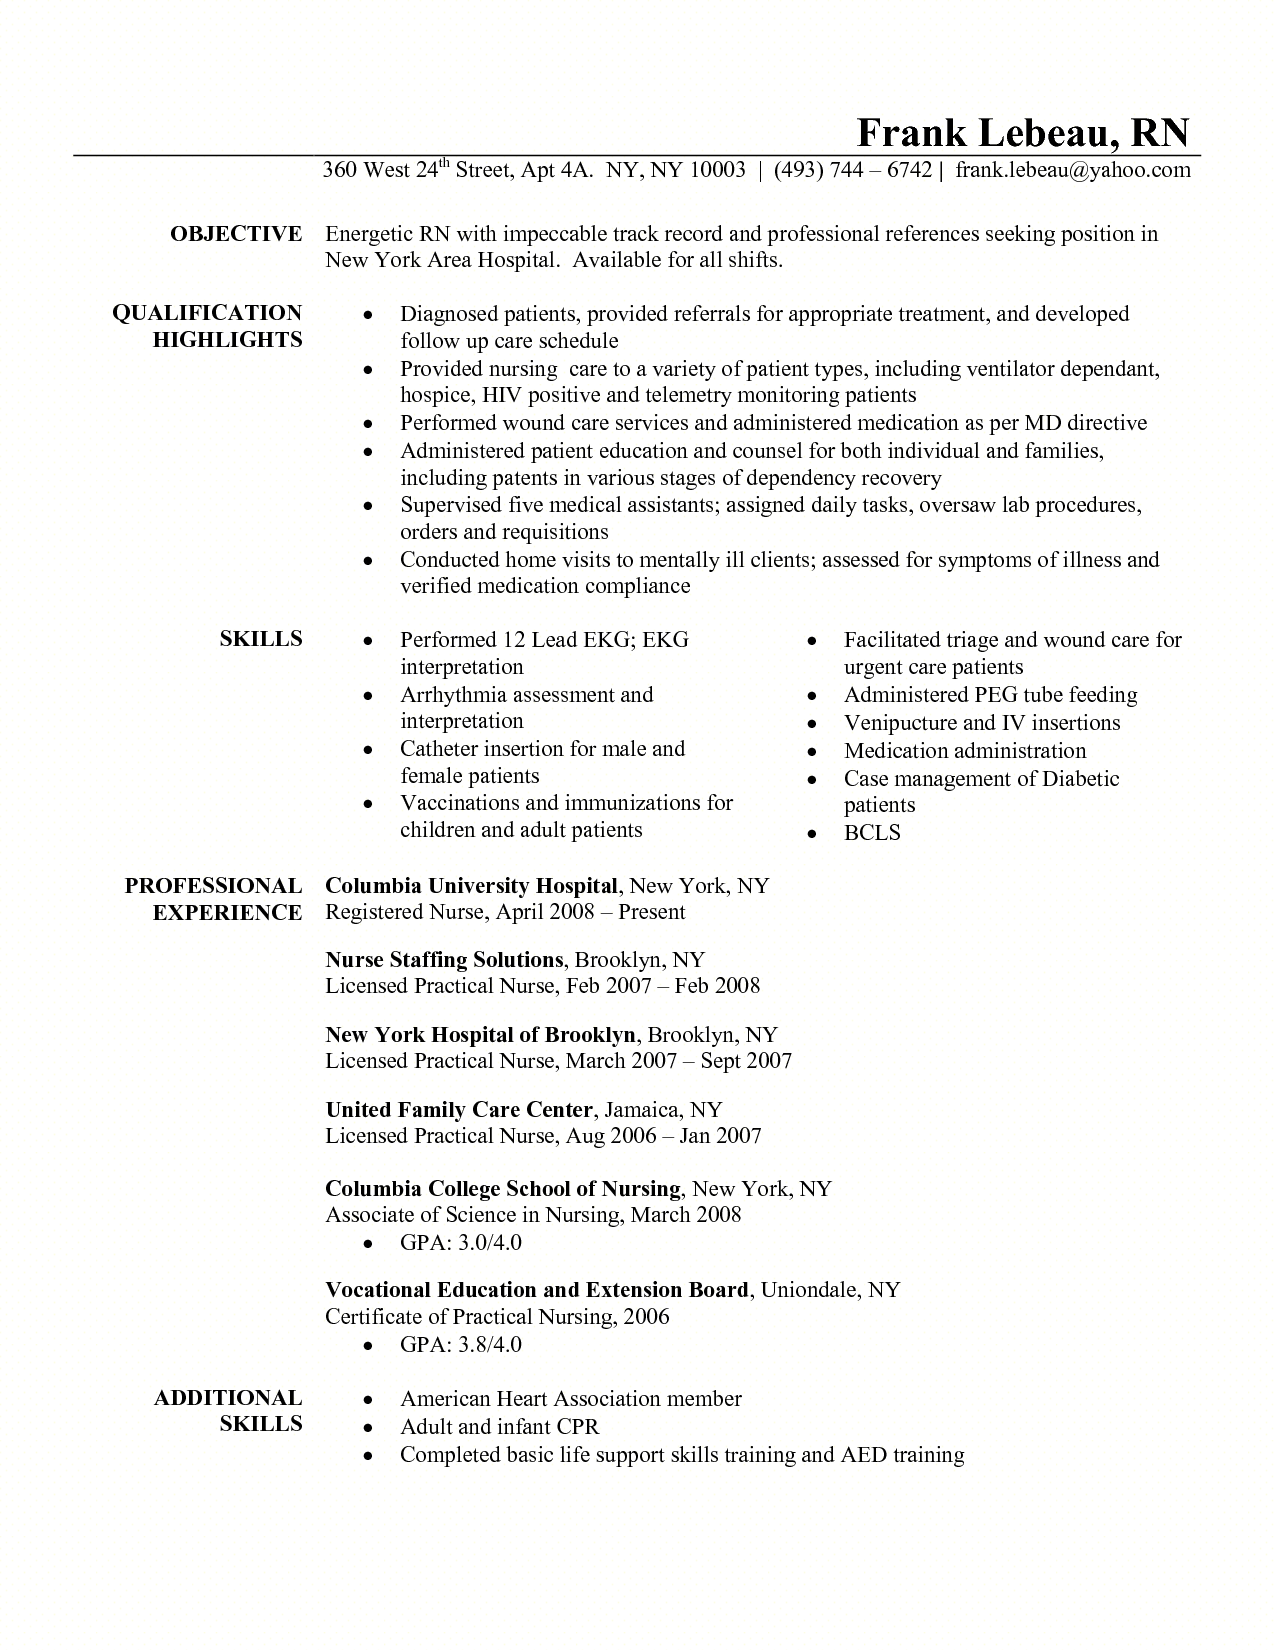 Labor And Delivery Nurse Resume Resume For Triage Nurse  Httpwwwresumecareerresumefor